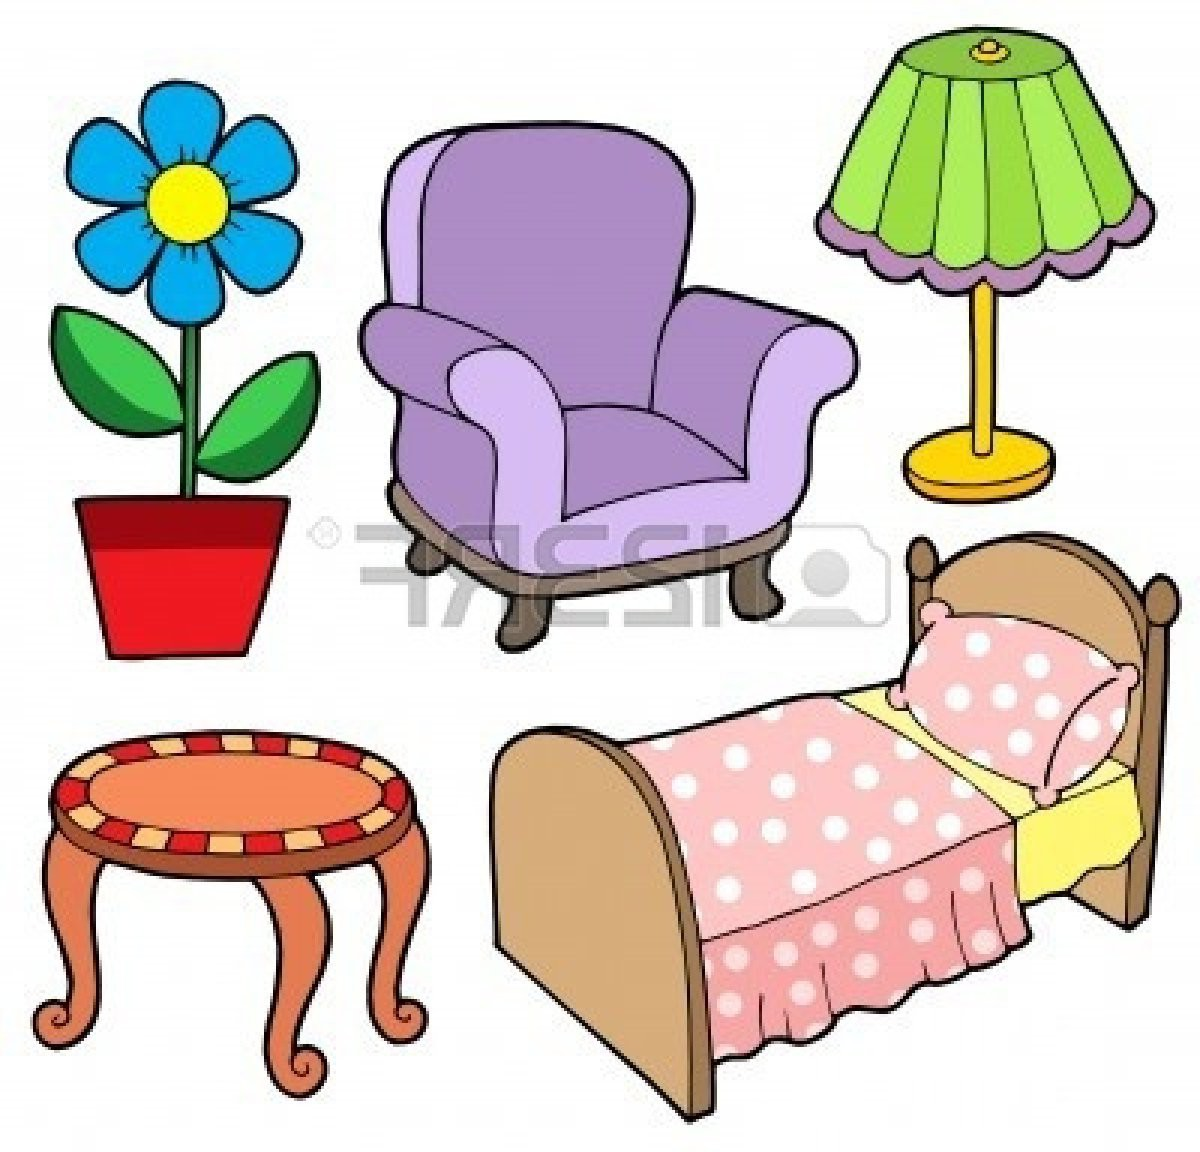 2416 Bedroom free clipart.